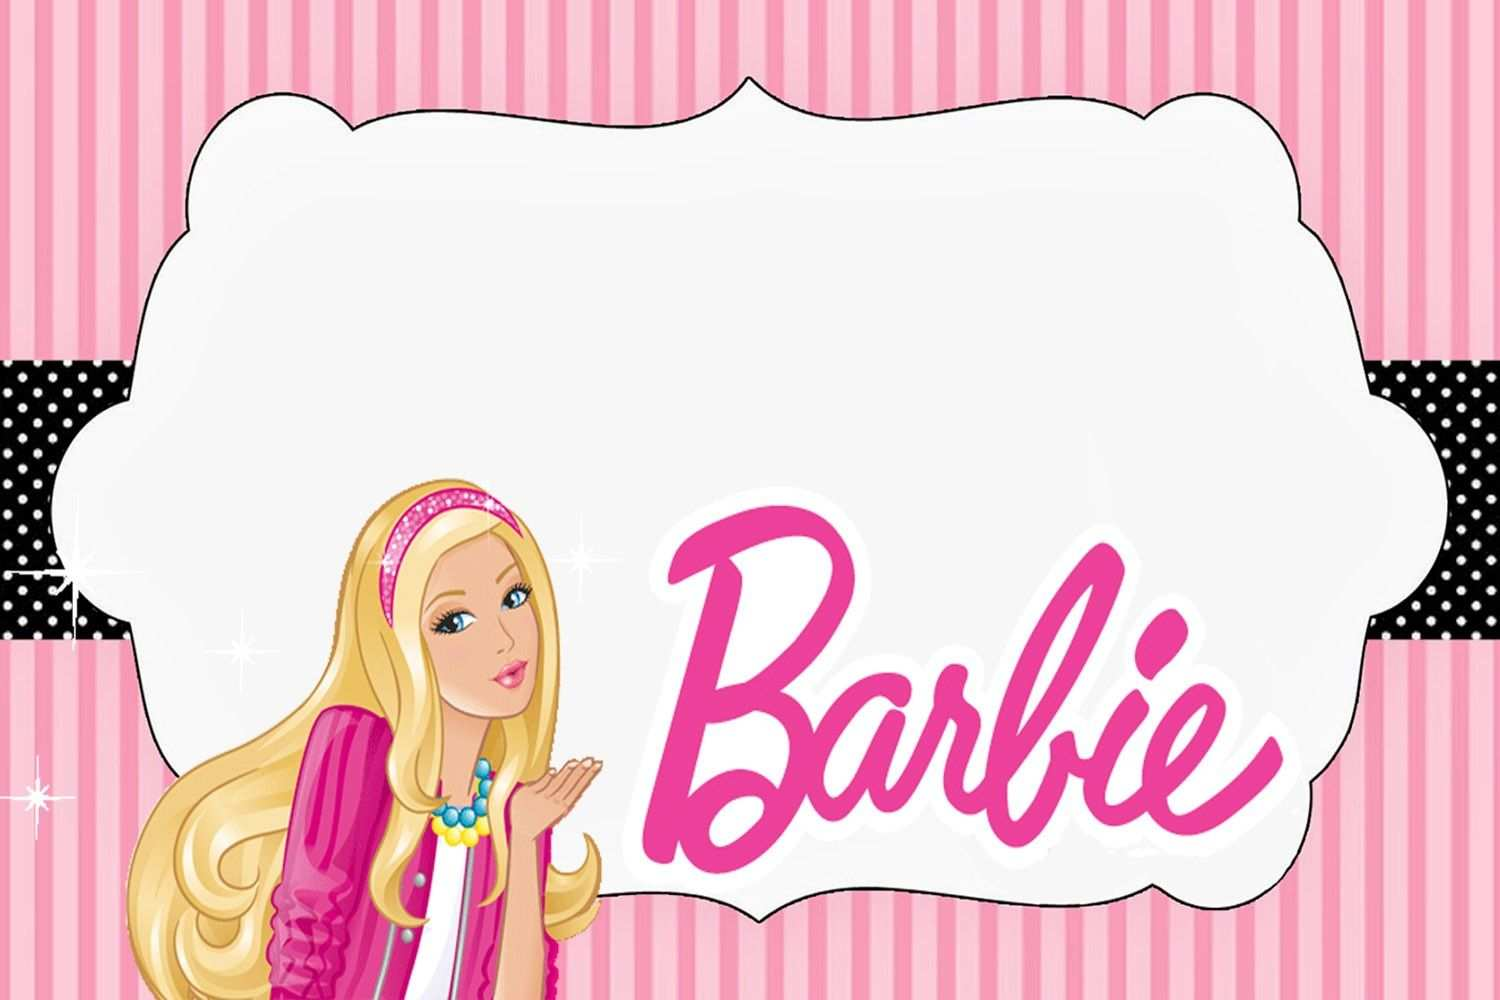 51 Customize Our Free Birthday Card Template Barbie Download For Birthday Card Template Barbie Cards Design Templates